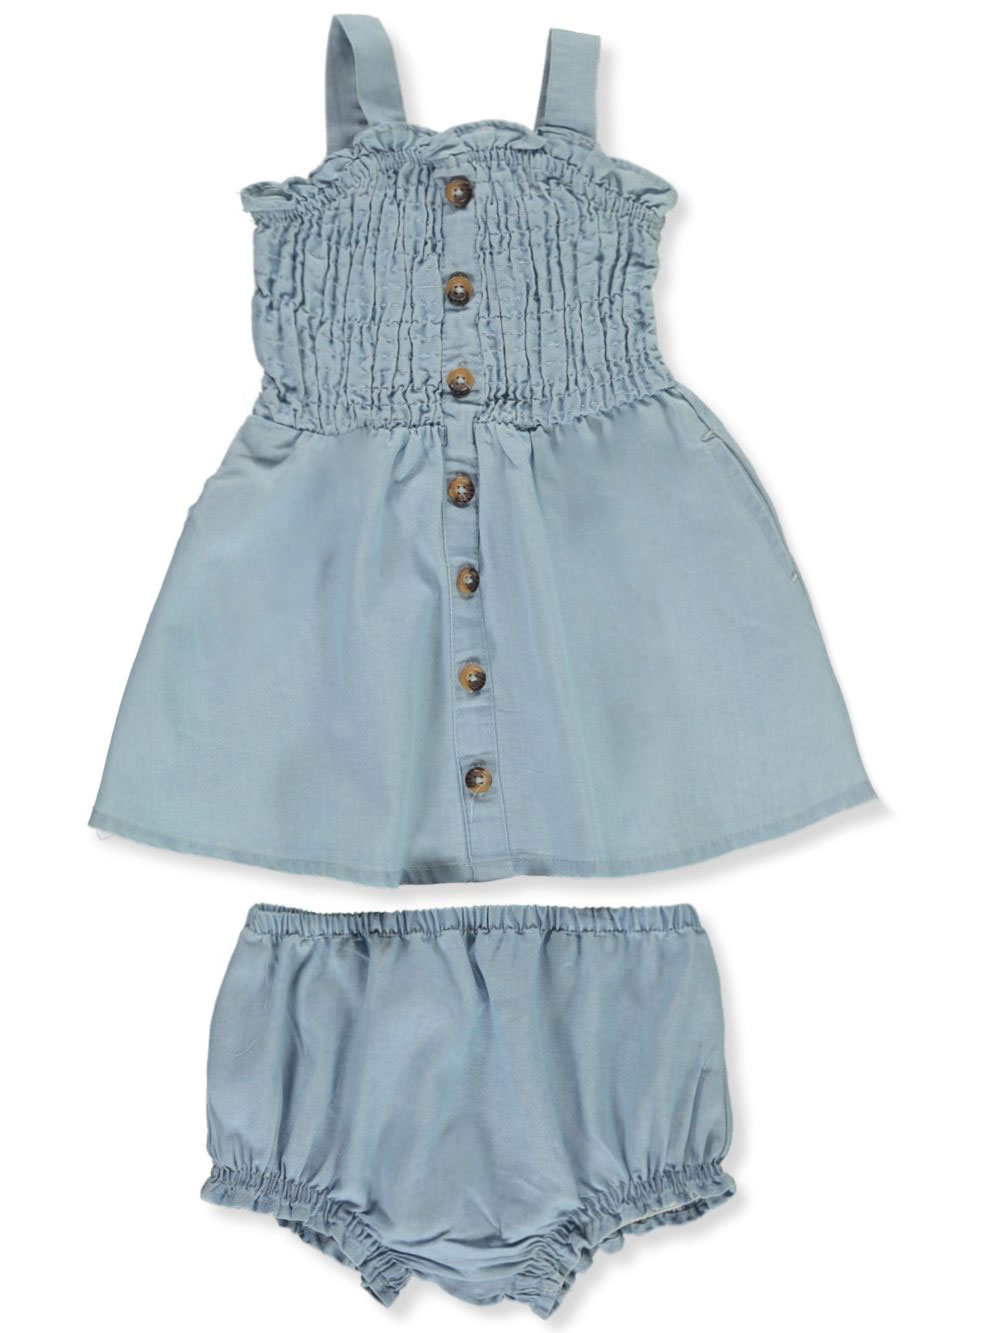 Smocked Denim Dress With Diaper Cover